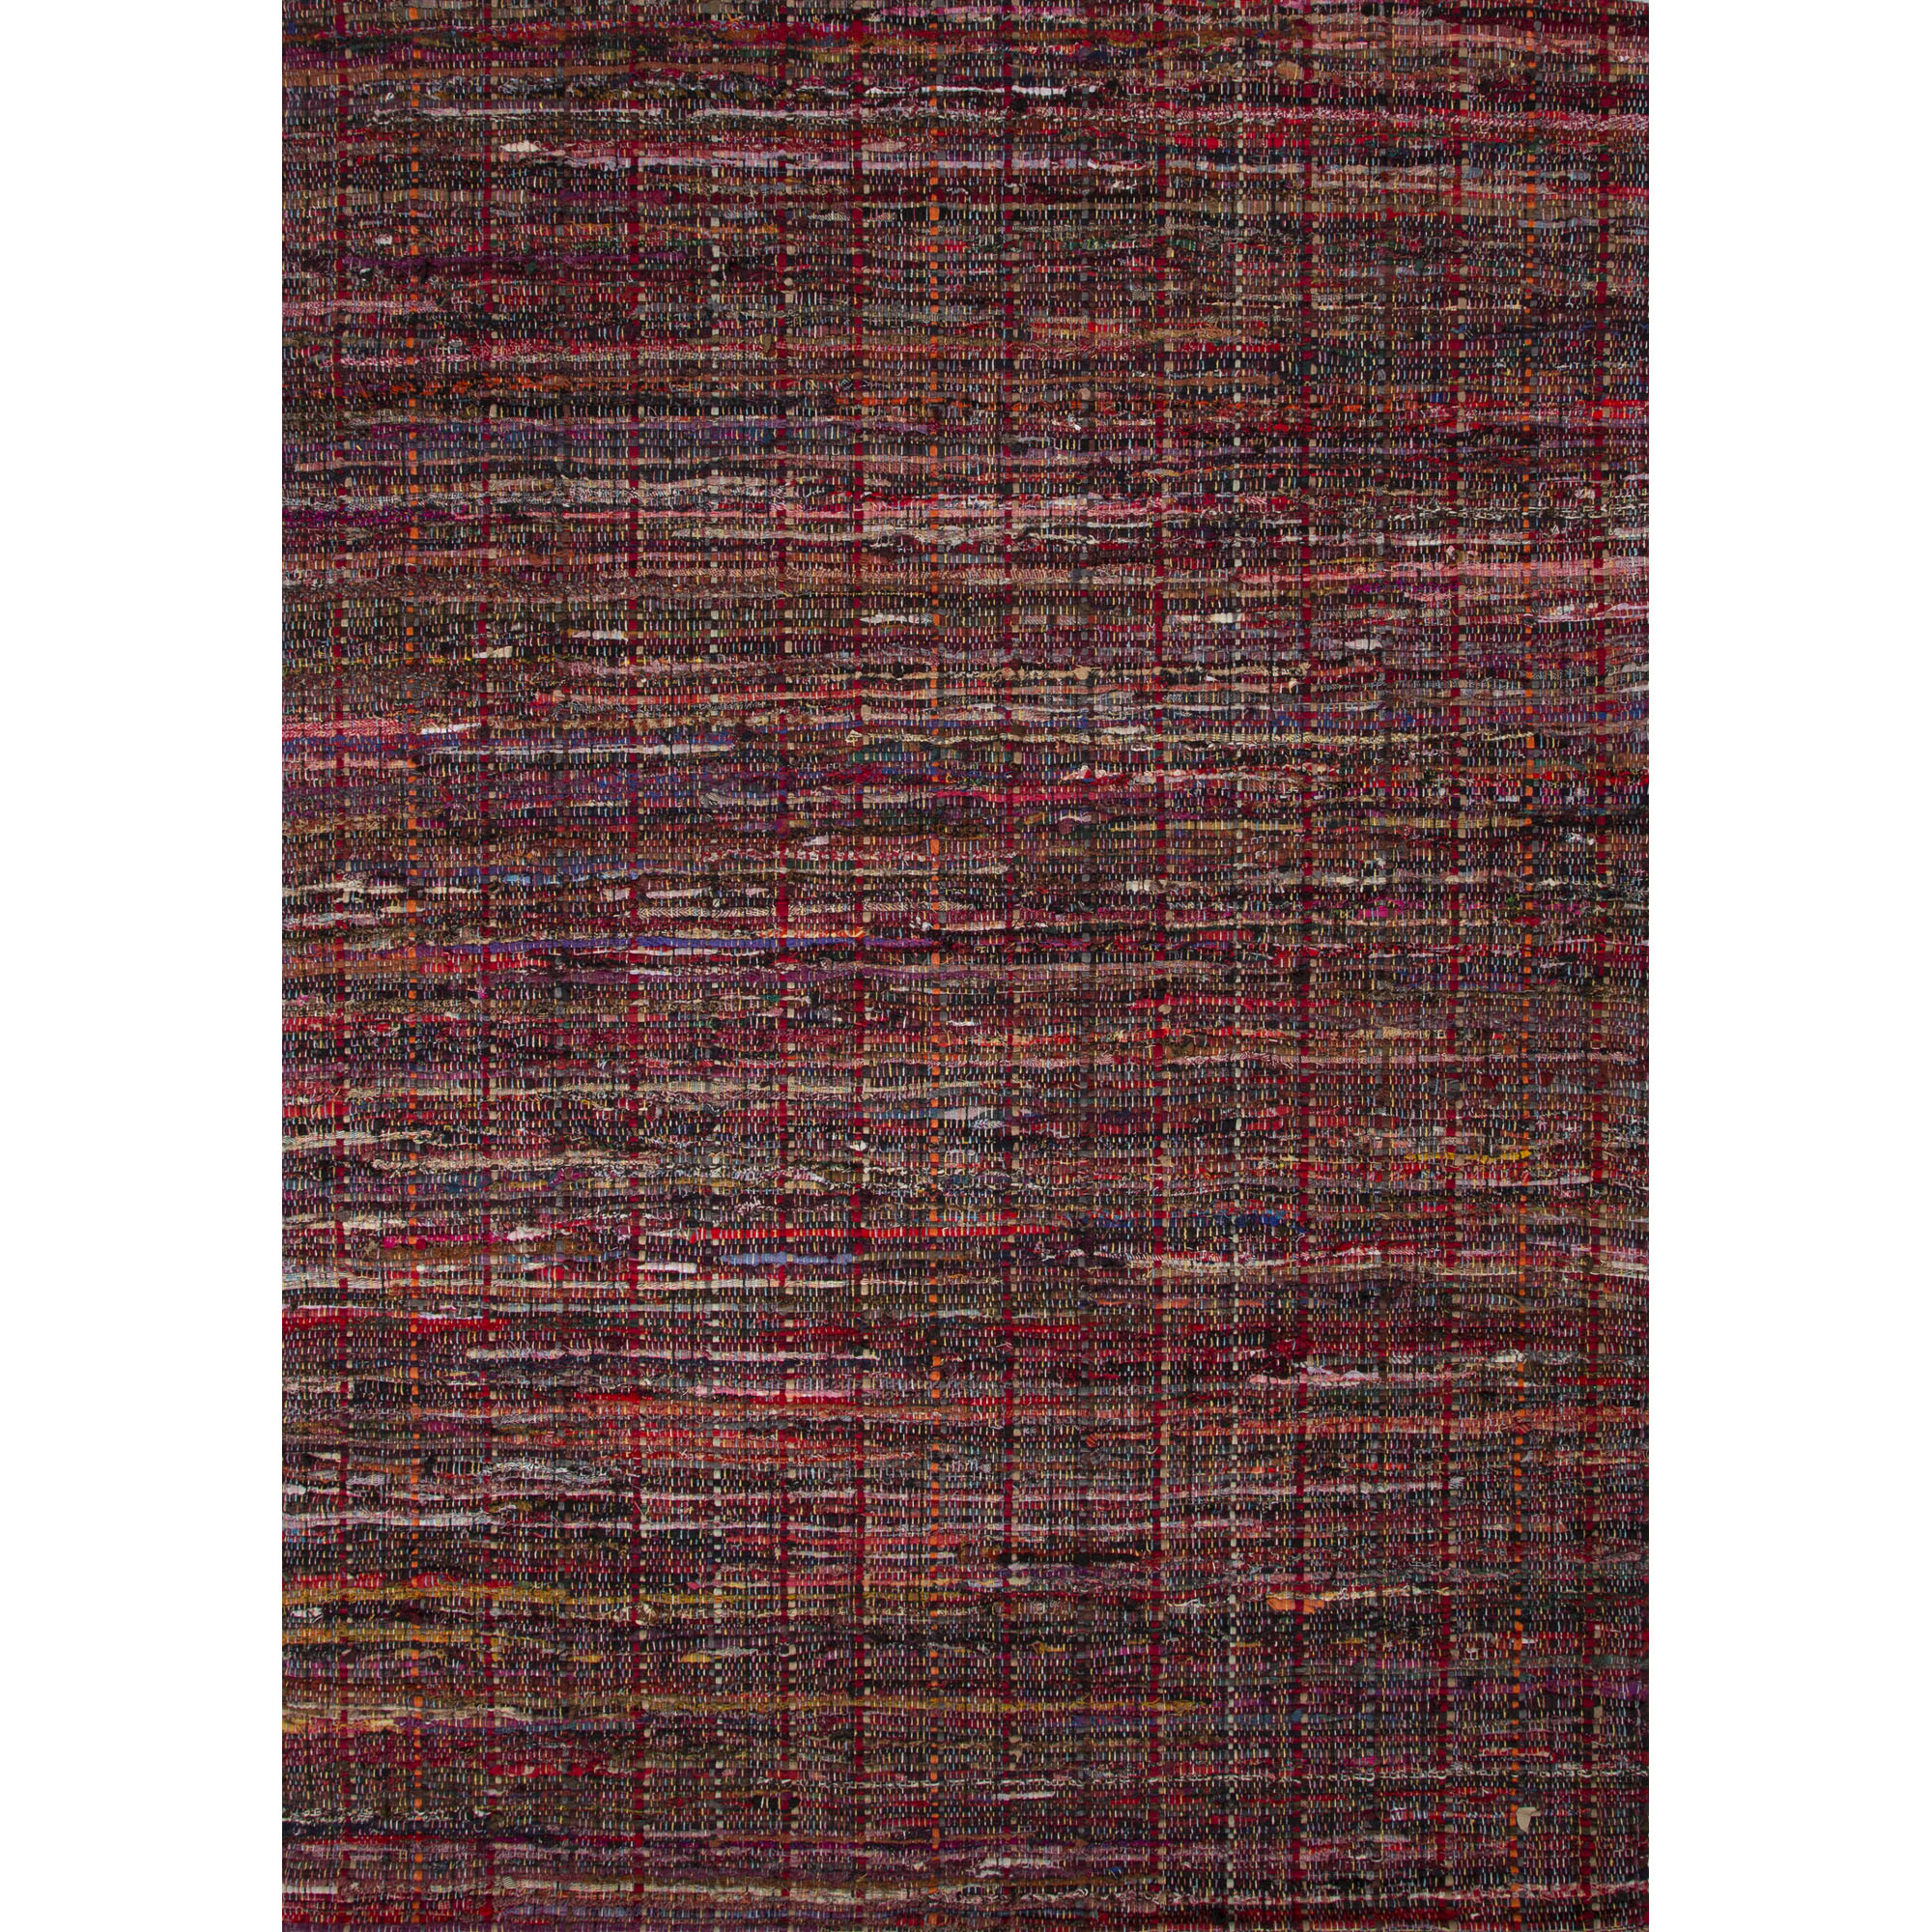 JAIPUR Rugs Madison By Rug Republic 2 x 3 Rug - Item Number: RUG124542